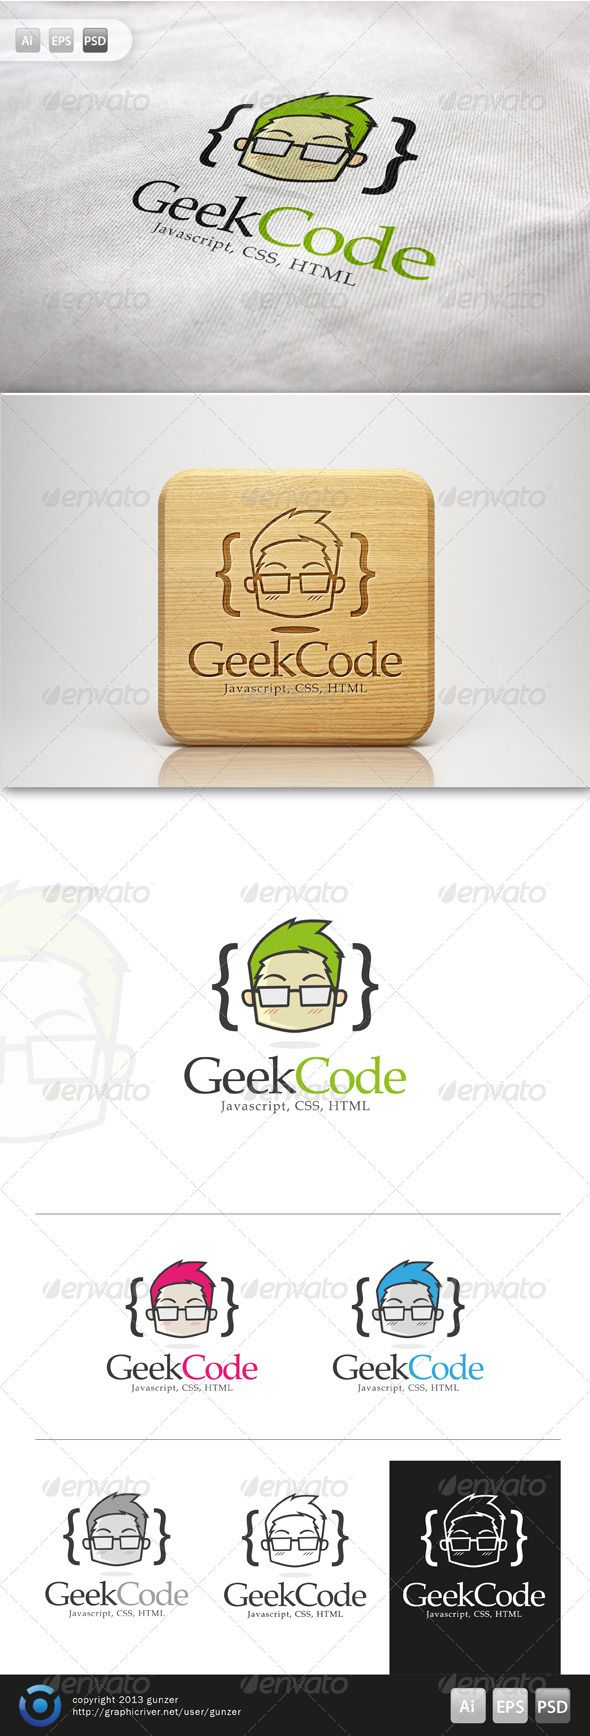 Geek Code Logo #GraphicRiver GeekCode Logo is 100% editable and resizeable vectors! suitable for comunity, service, product or other related. Well organized file, All colors and text can be modified, read the instruction readme.pdf Font: fontzone /font-details/book-antiqua Colour: CMYK Files: .ai / .eps / .eps version 10 / .psd Size: Resizeable Contact me if you need any help and would be appreciate if you may rate this item.. Cheers! Created: 5October13 GraphicsFilesIncl...